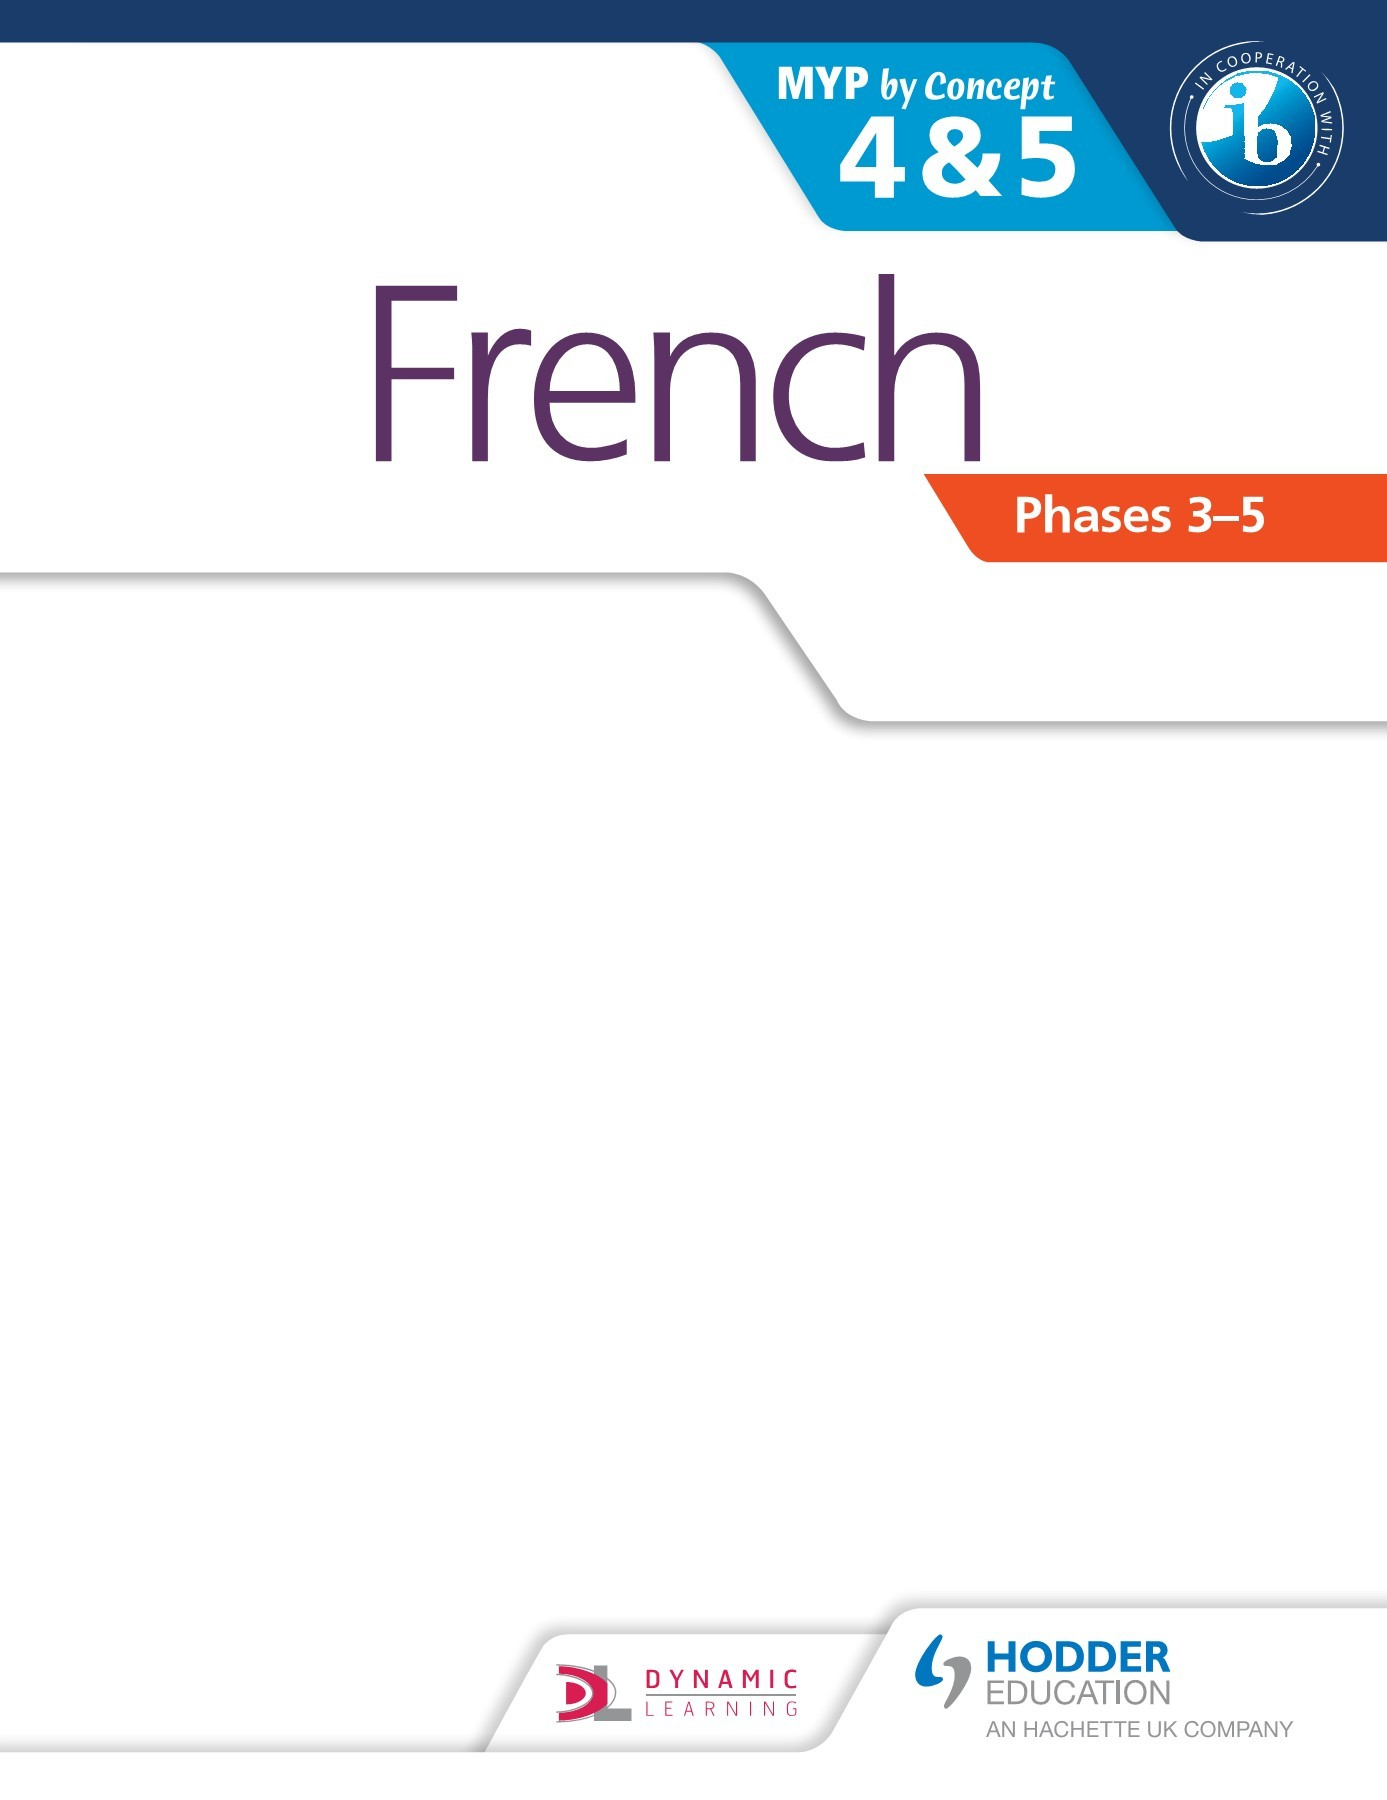 Pronoms Carte Mentale T Teaching French Education